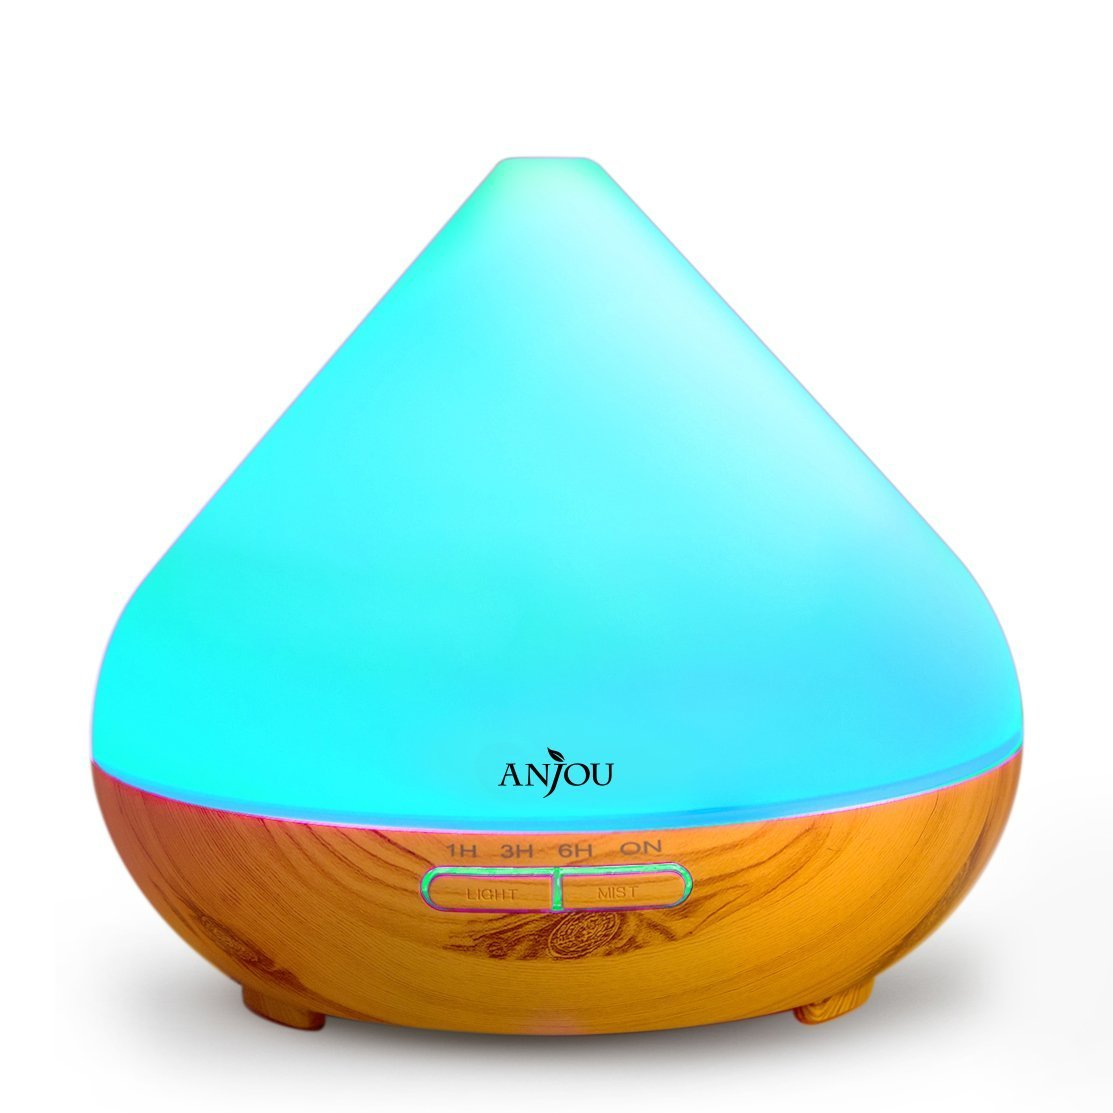 Essential Oil Diffuser 300ml Anjou Aromatherapy Diffuser, Ultrasonic Cool Mist Humidifier for Office, Home Decor Gift, Up to 8H Use, Waterless Auto Shut-Off, 7 Color LED Lights, Wood Grain, BPA-free